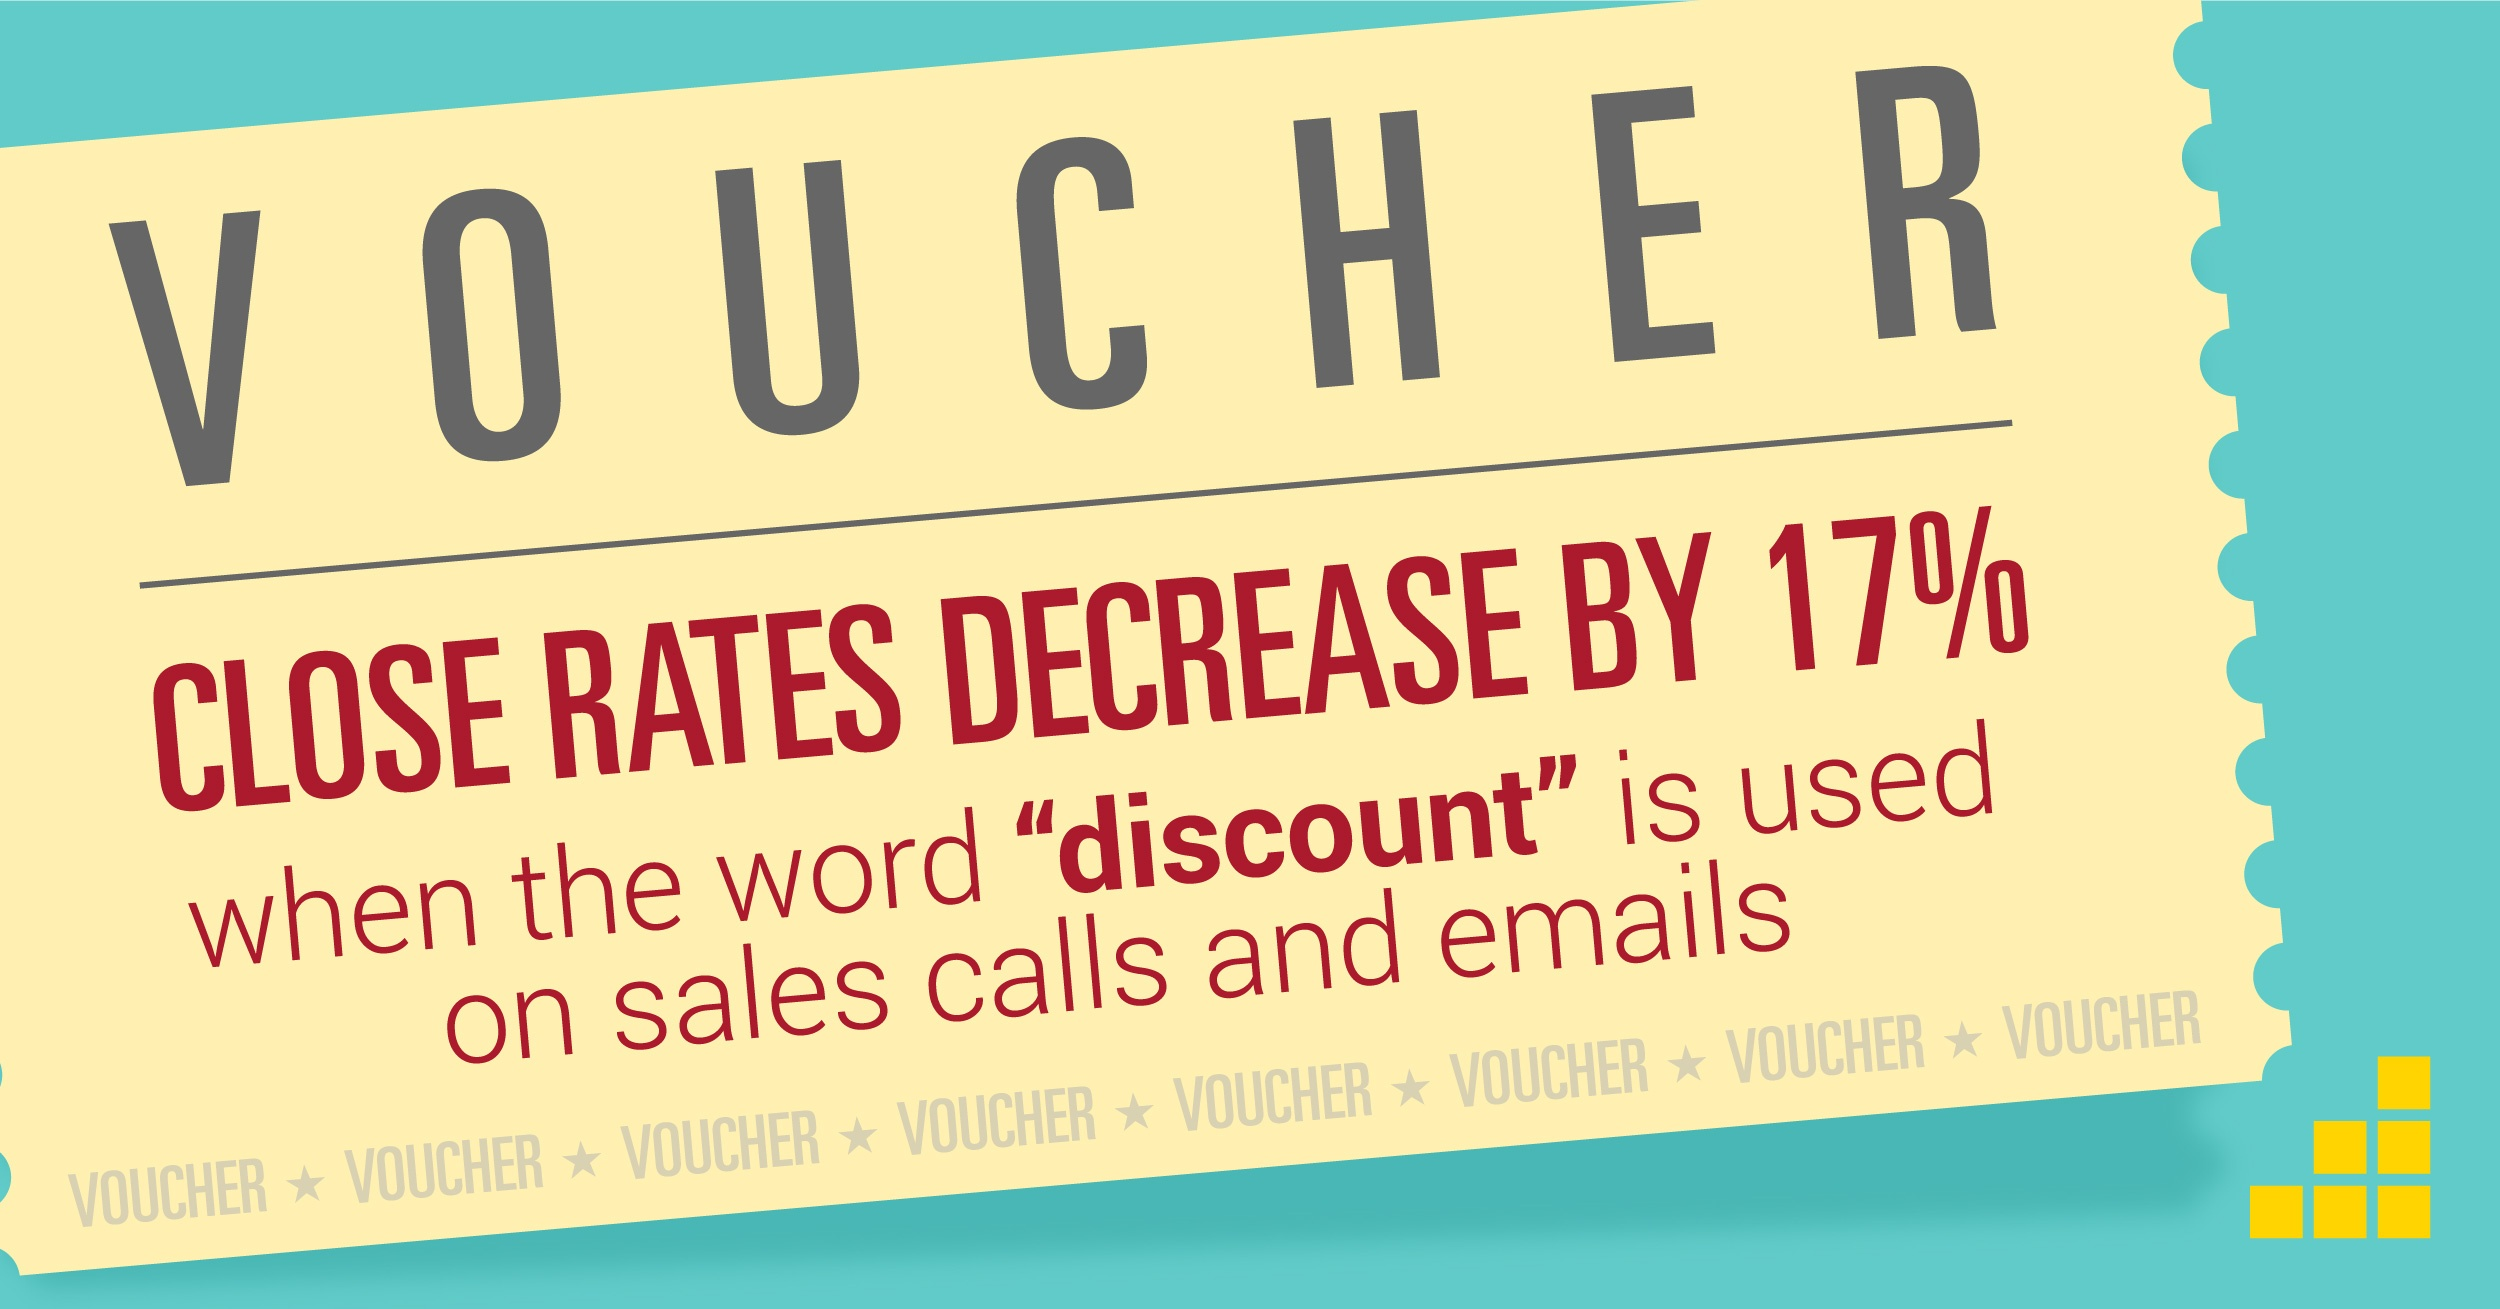 """Close rates decrease by 17% when the word """"discount"""" is used on sales calls and emails - sales productivity stat"""